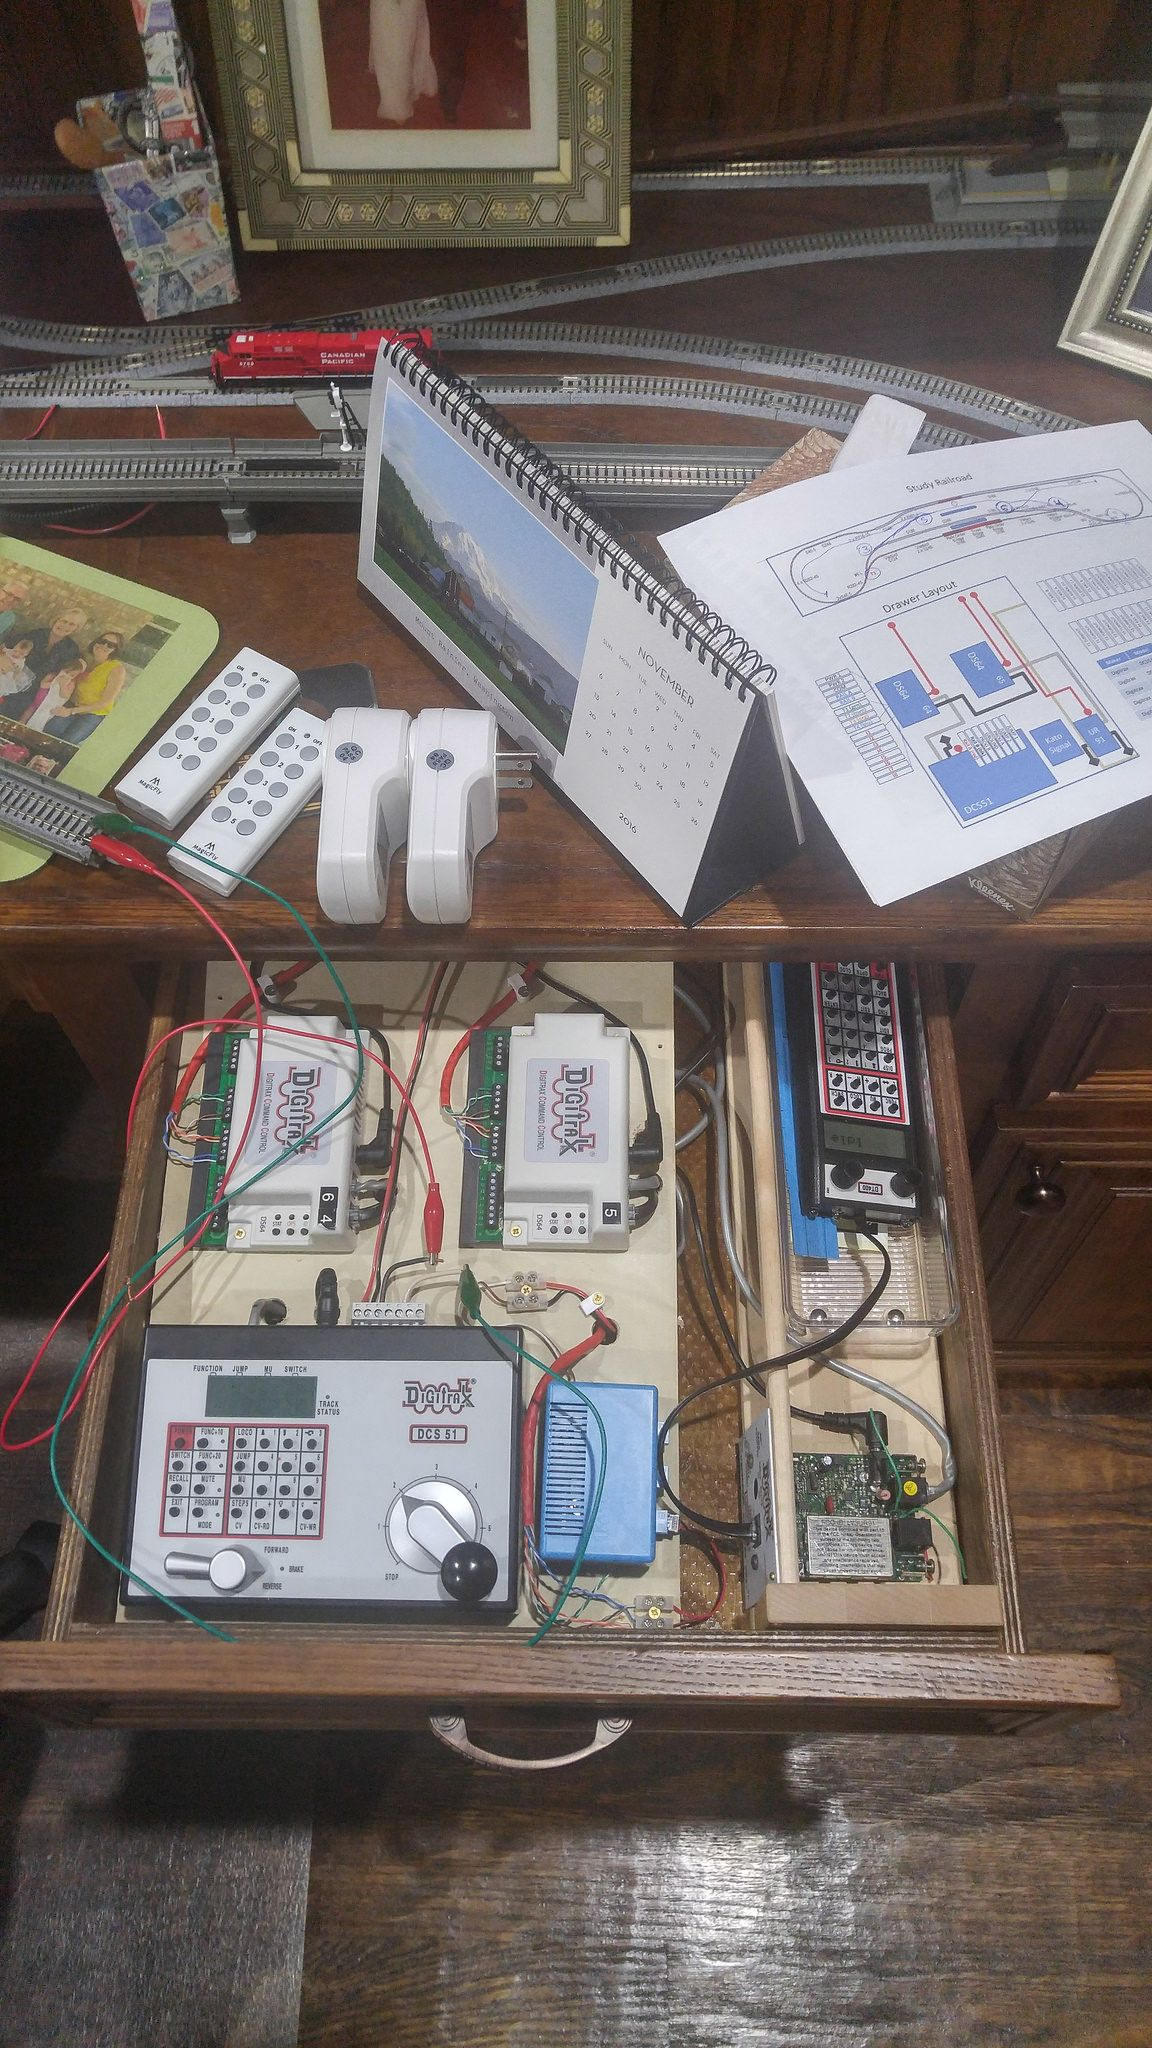 Digitrax Dcc Dcs51 Zephyr Drawer Pinterest Wiring Track My Friend Gws Layout Control For Components Ds64 And